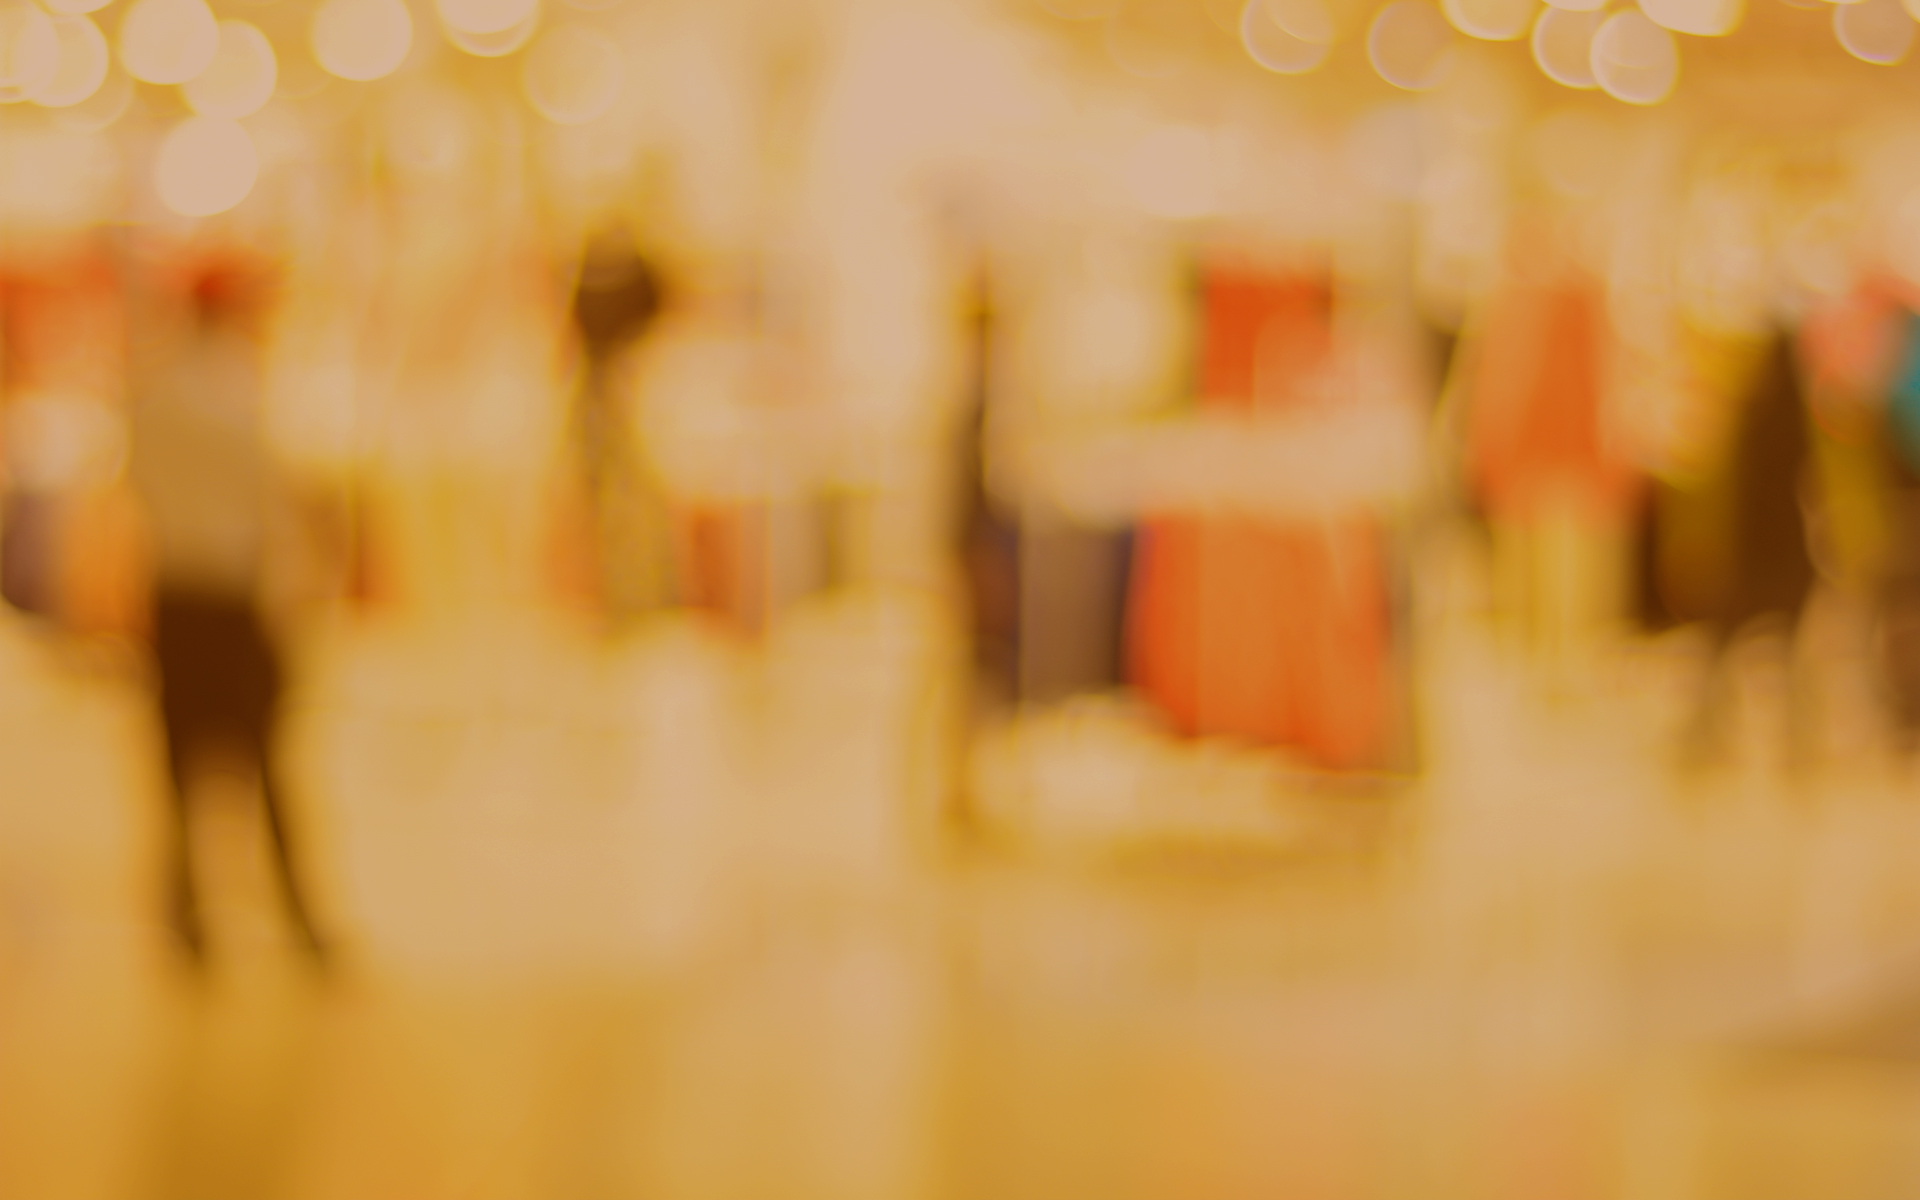 Blur store with bokeh background image